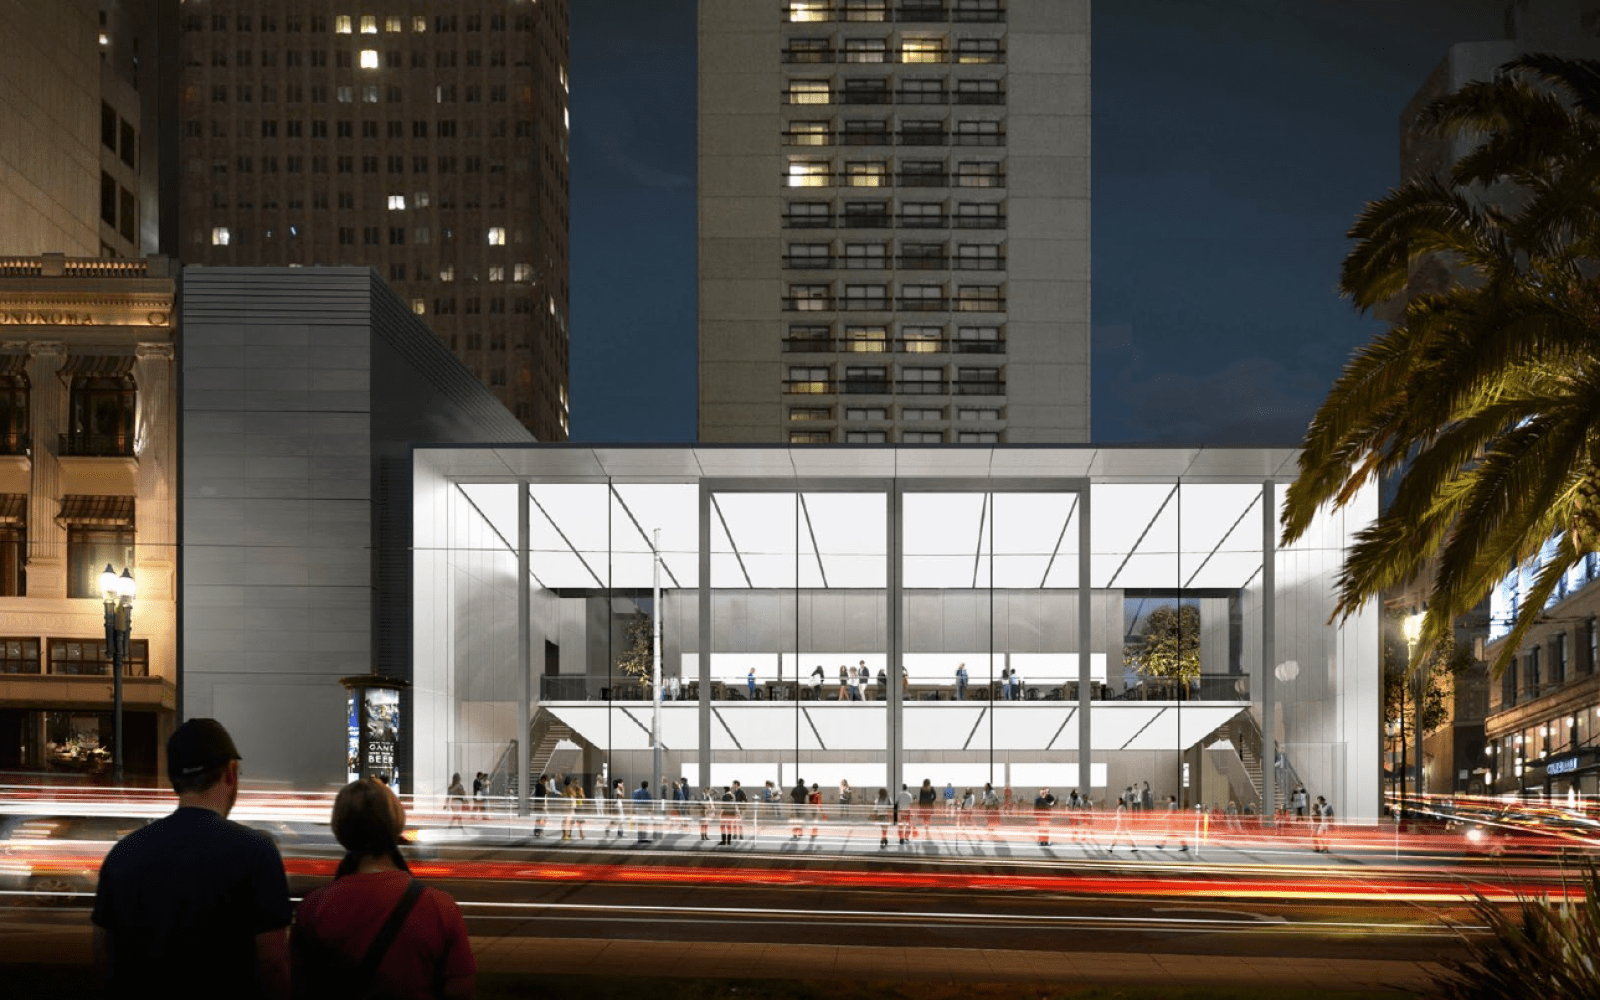 New renderings show proposed Union Square Apple Store with 23-foot sliding glass doors